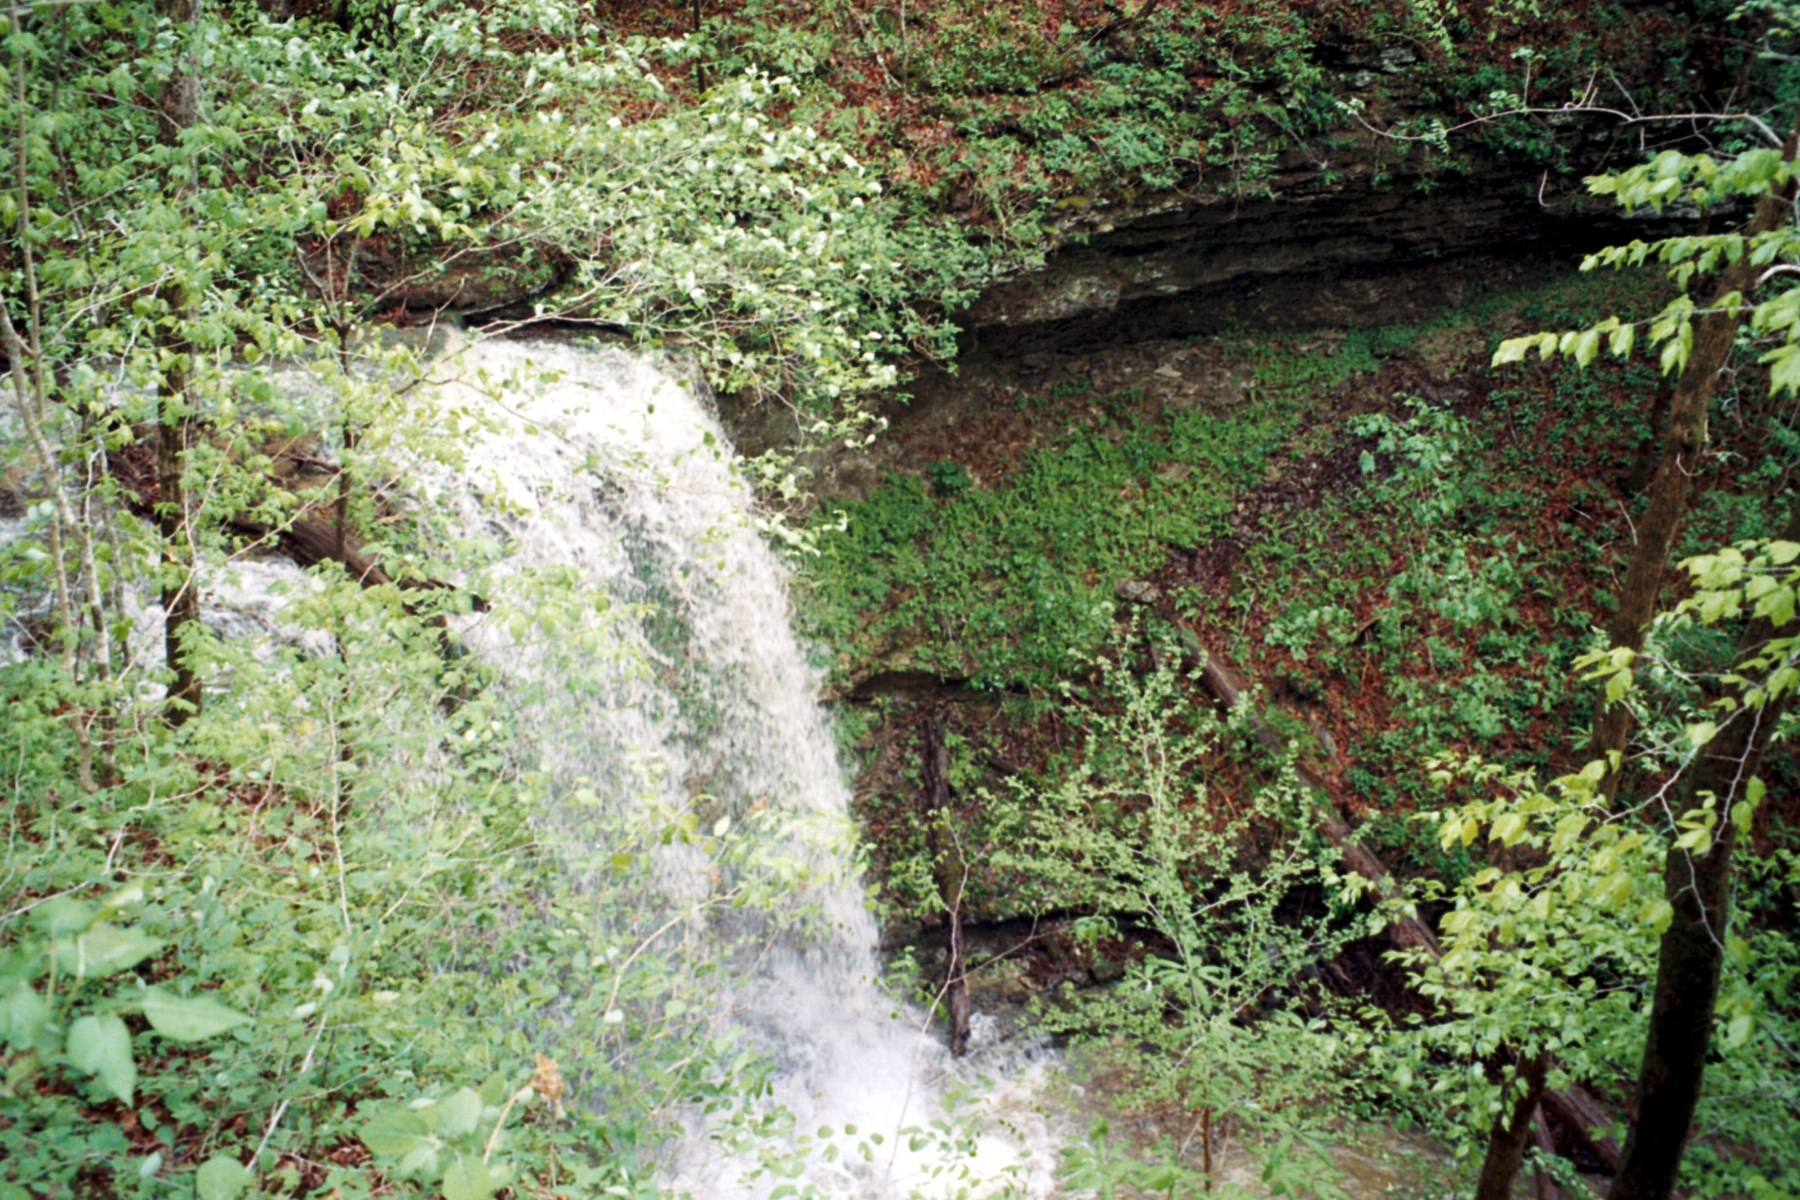 DEKALB CO. TN/SPARTA, TN/WATERFALLS/CREEKS/HUNTING/FISHING